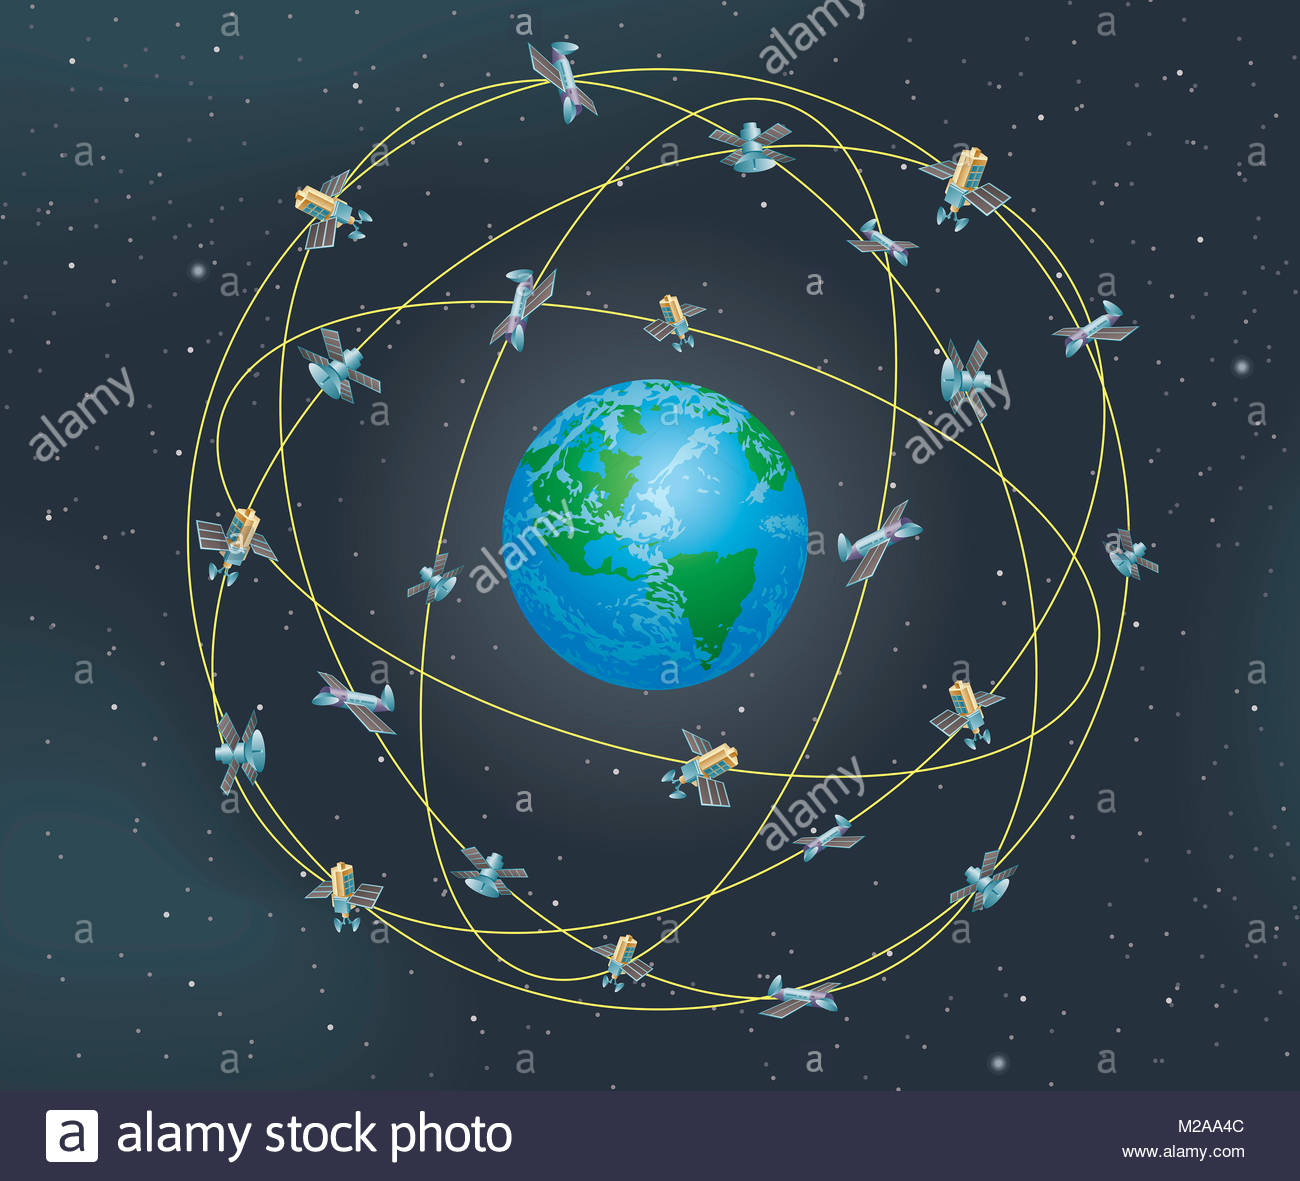 Lots of different satellites orbiting planet earth - Stock Image